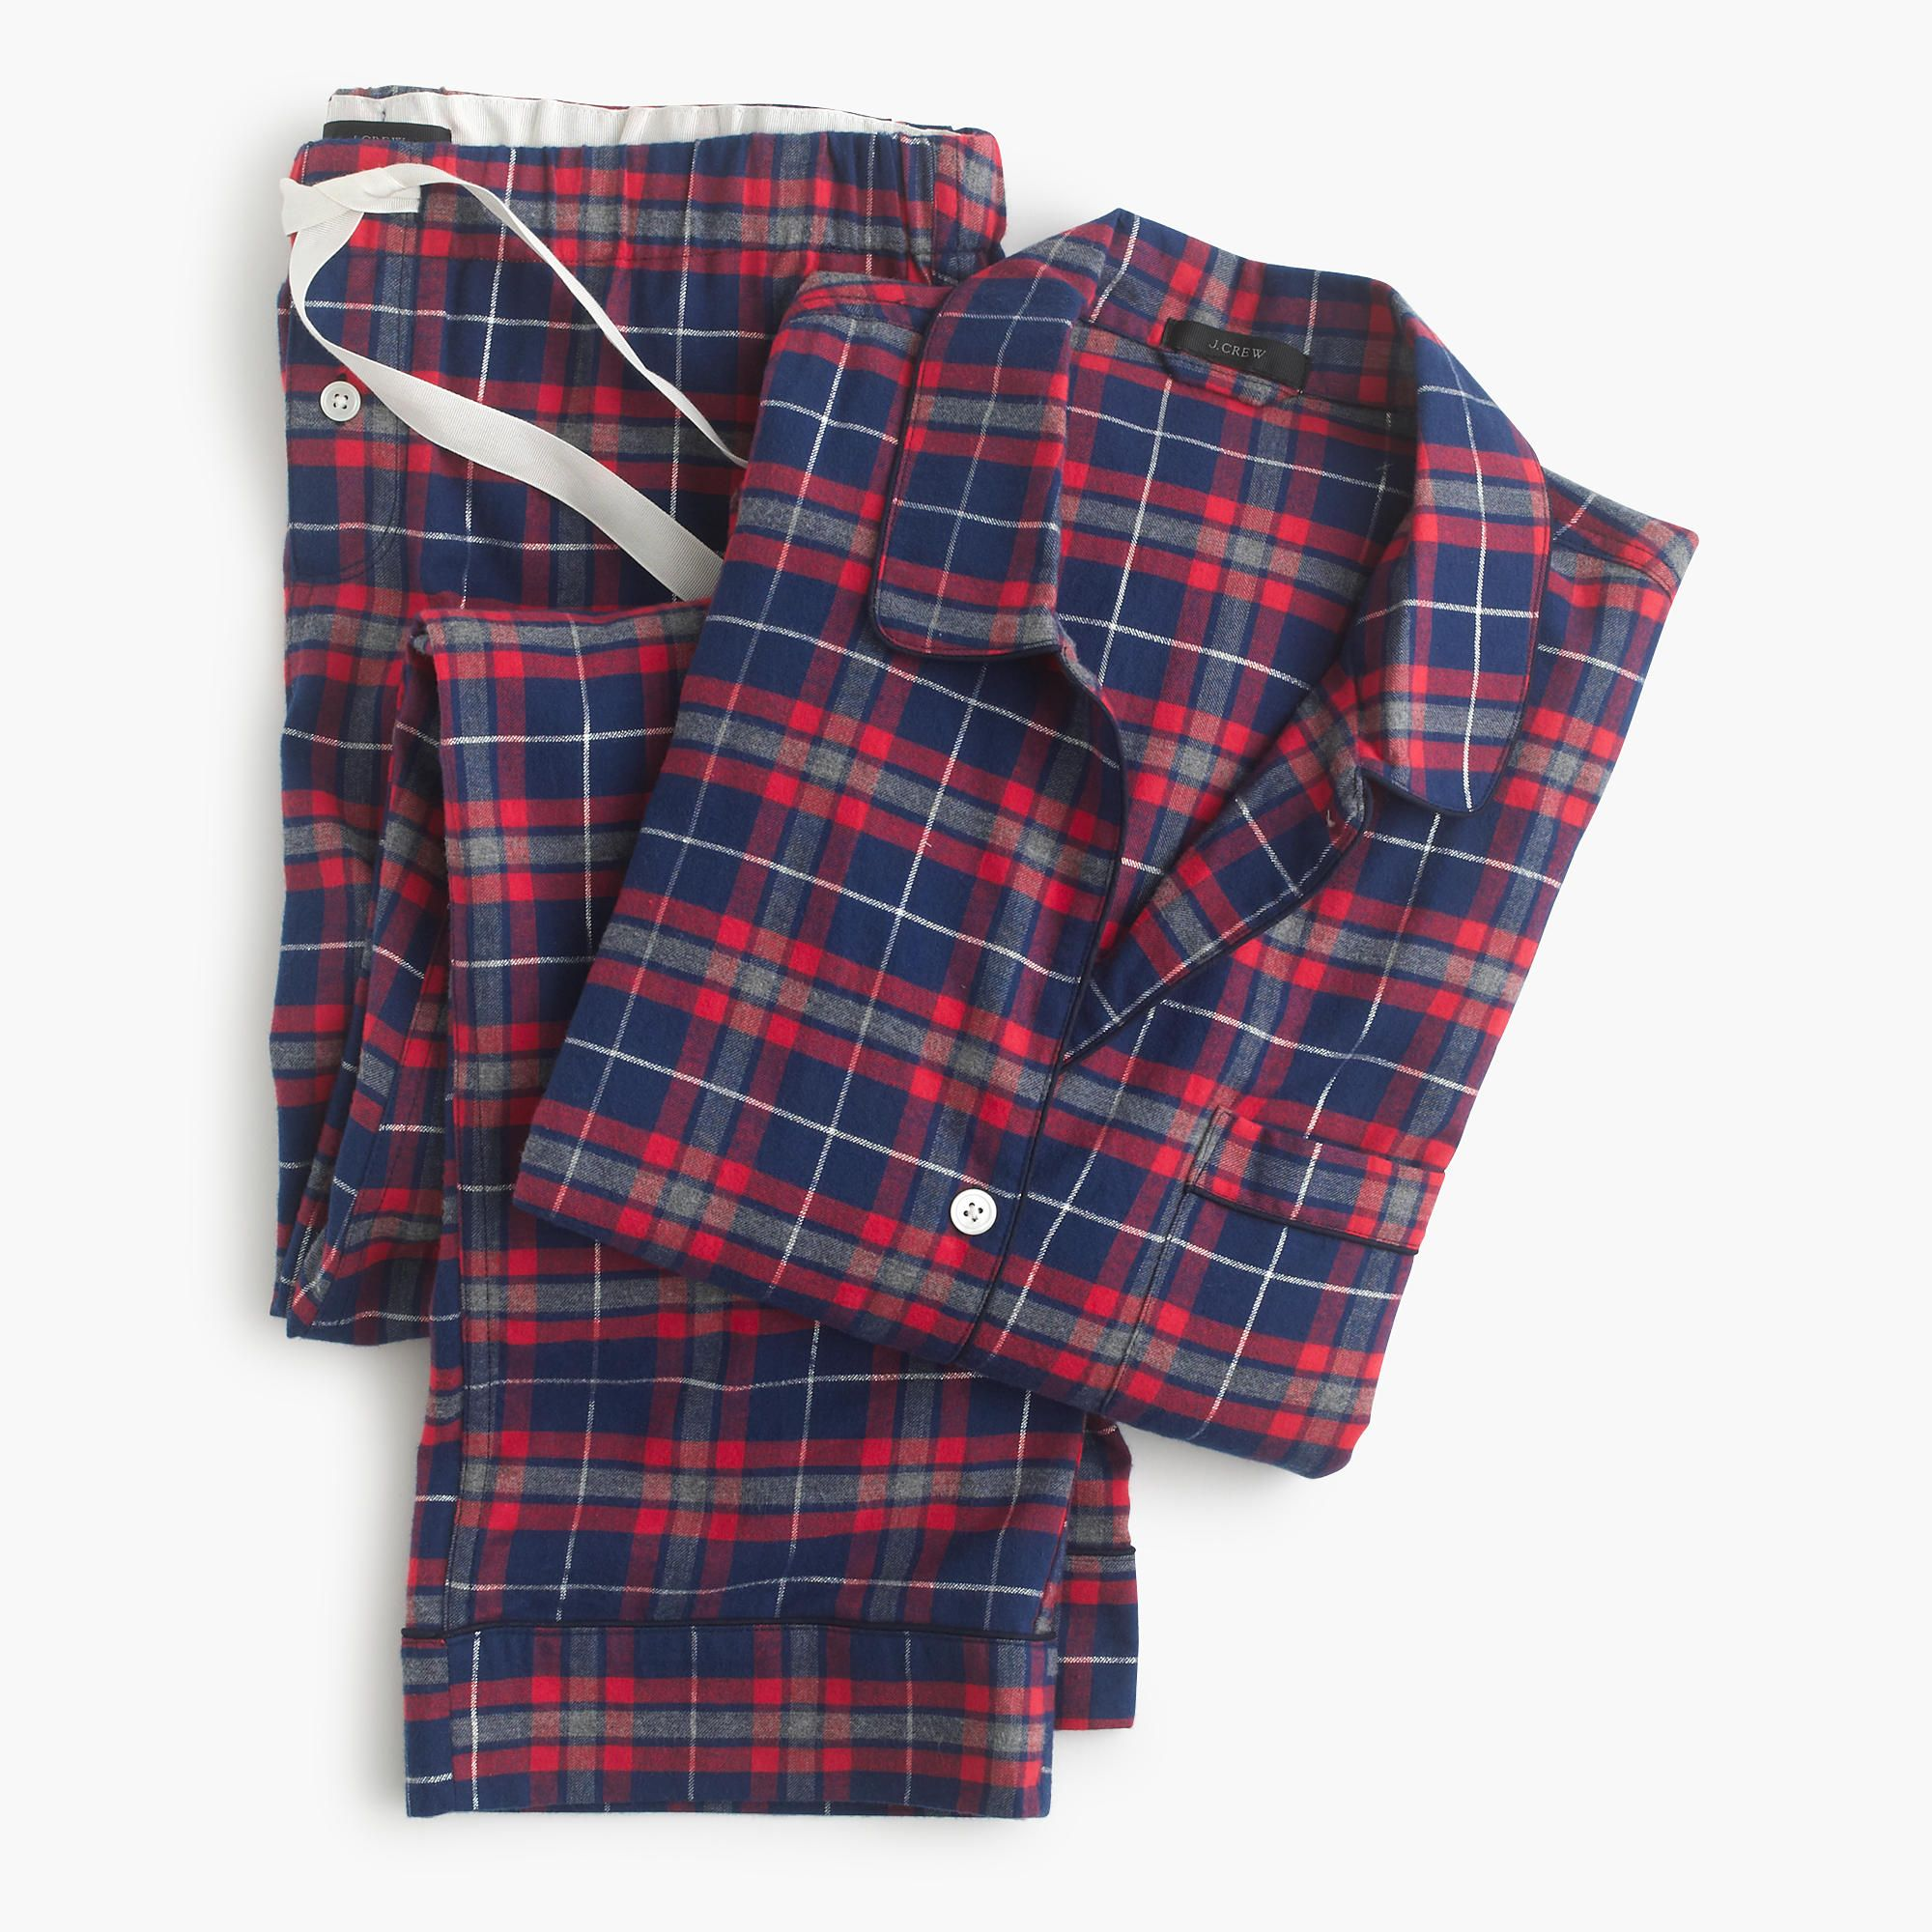 "<p>J.Crew Sparkle Plaid Flannel Pajama Set, $55&#x3B; <a href=""https://www.jcrew.com/womens_category/sleepwear/PRD~E3823/E3823.jsp?N=17&Nbrd=J&Nloc=en_US&Nrpp=48&Npge=1&Ntrm=pajamas&isSaleItem=true&color_name=HAVEN%20BLUE%20SILVER&isFromSearch=true&isNewSearch=true&hash=row1"">jcrew.com</a><a href=""https://www.jcrew.com/womens_category/sleepwear/PRD~E3823/E3823.jsp?N=17&Nbrd=J&Nloc=en_US&Nrpp=48&Npge=1&Ntrm=pajamas&isSaleItem=true&color_name=HAVEN%20BLUE%20SILVER&isFromSearch=true&isNewSearch=true&hash=row1""></a></p><p><strong>How soon can I get them?</strong> For $25, you can receive them in one to two business days.<span class=""redactor-invisible-space""><br></span></p>"